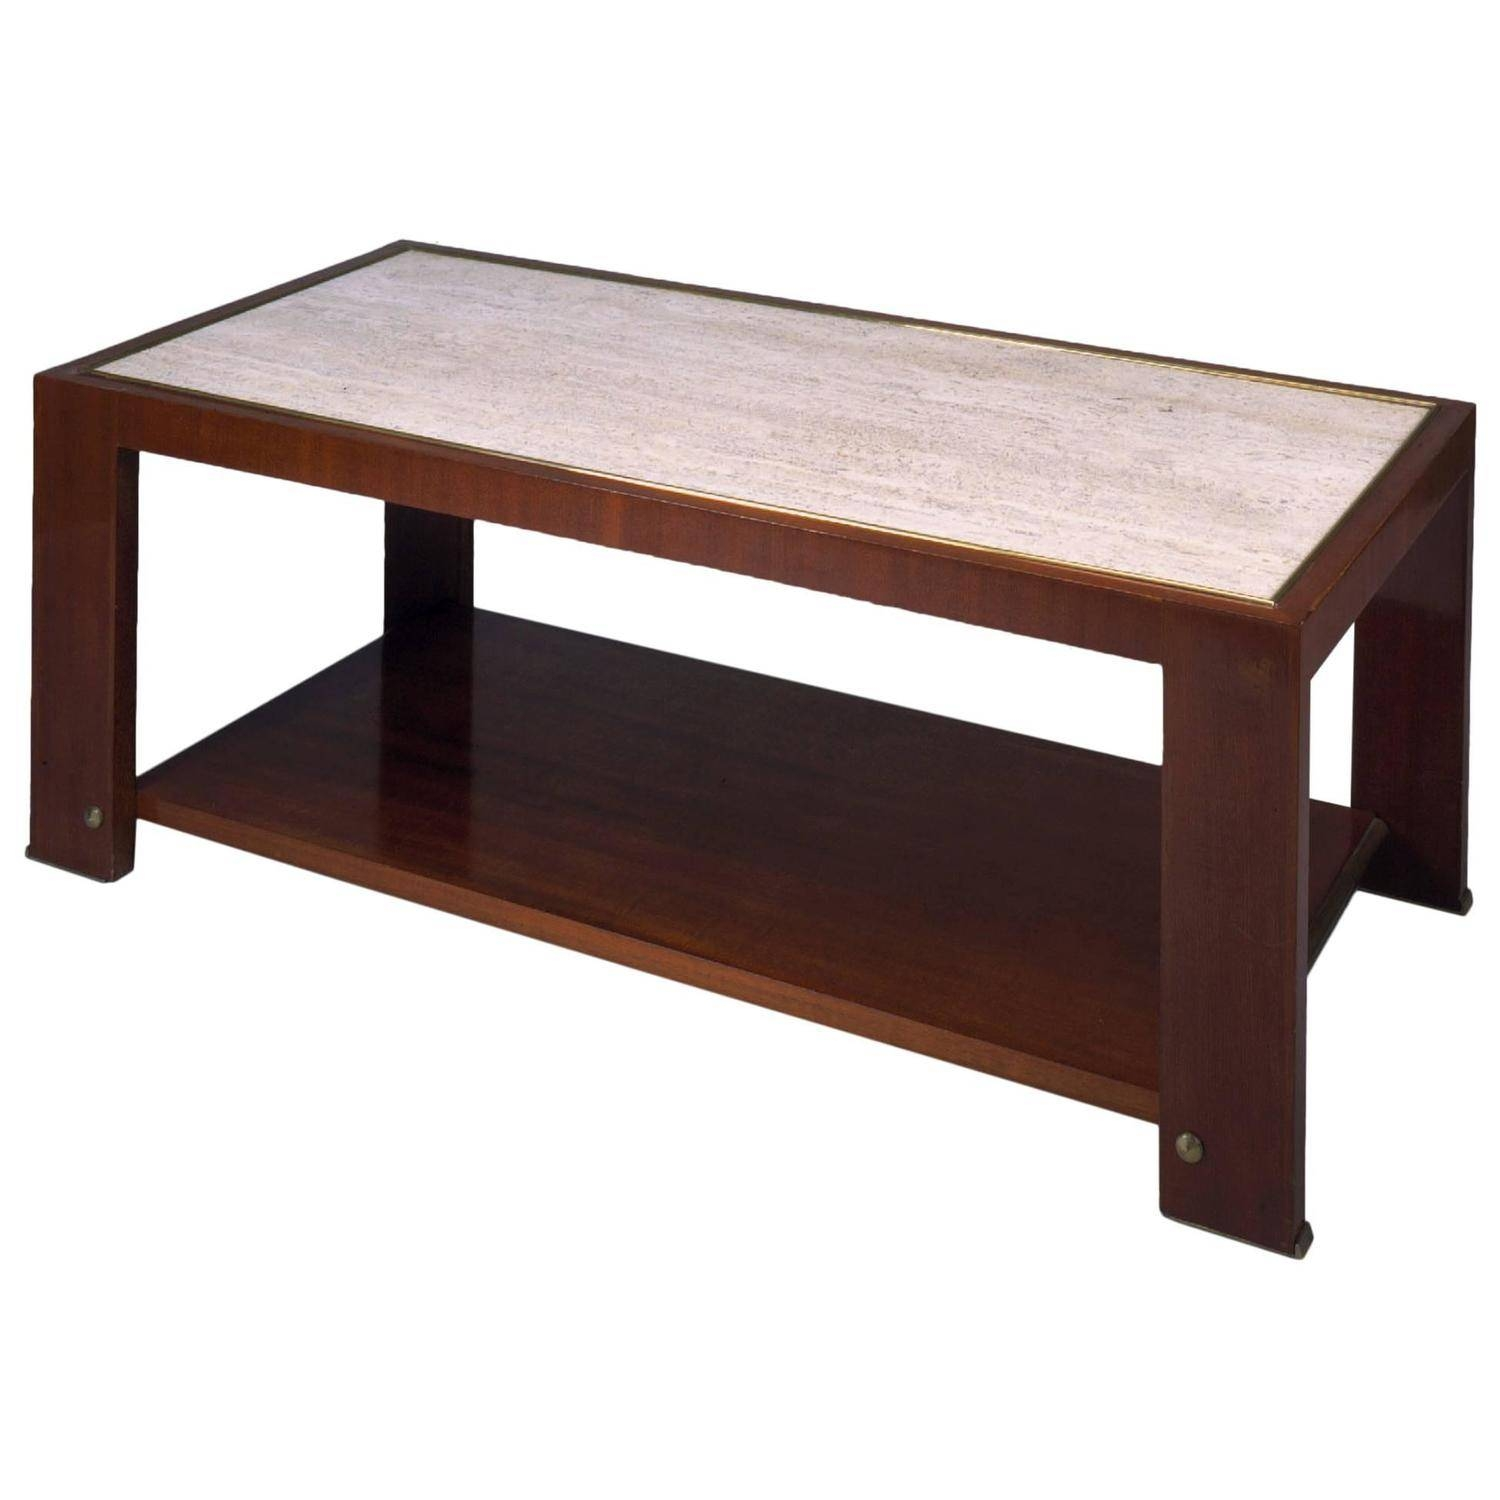 Paul Dupré-Lafon, Mahogany And Travertin Coffee Table, Circa 1935 with regard to Mahogany Coffee Tables (Image 28 of 30)